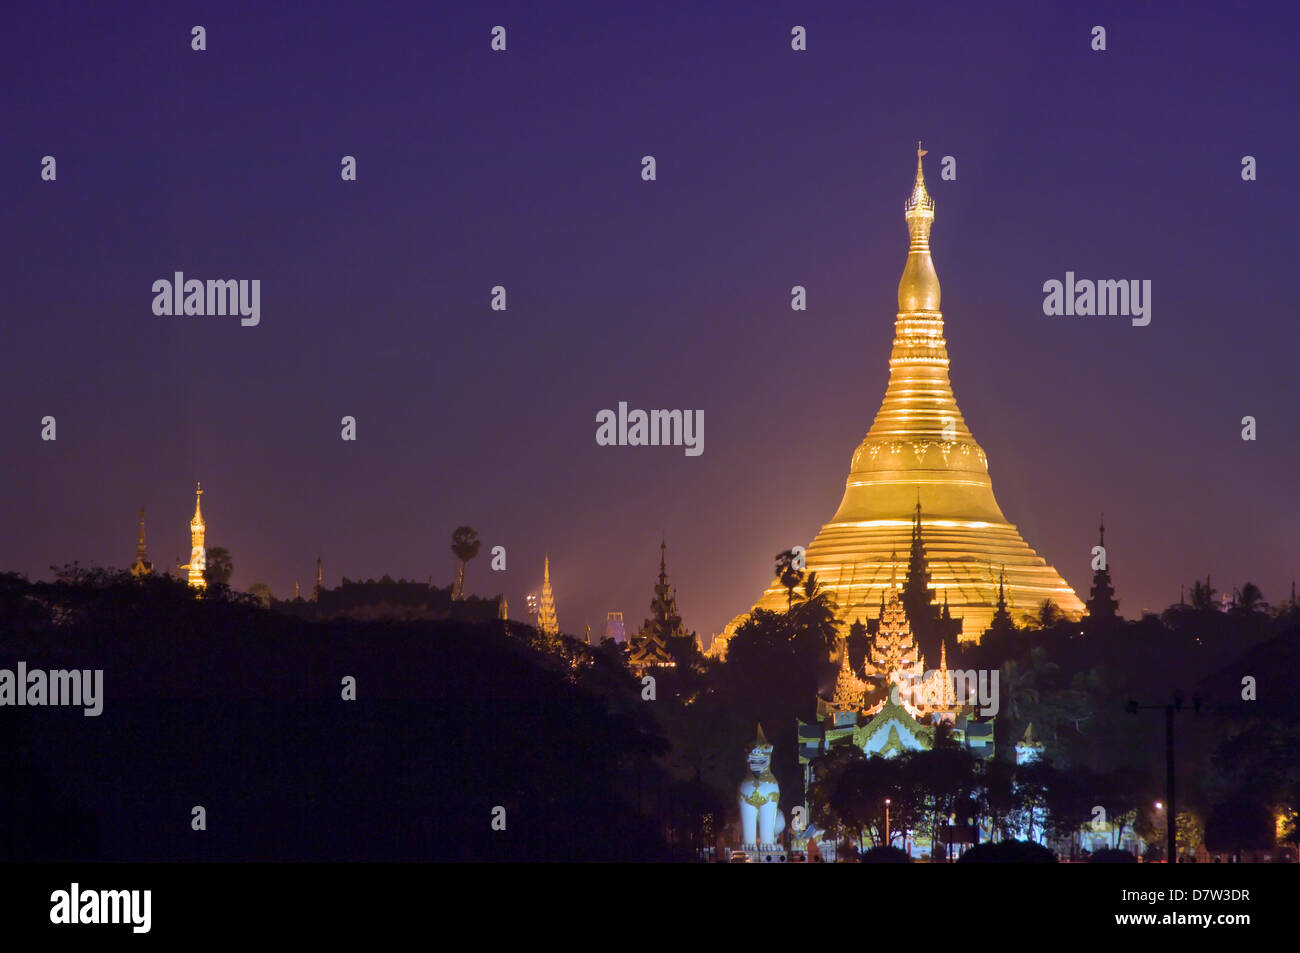 Golden stupa before sunrise, Shwedagon Pagoda, Rangoon (Yangon), Burma (Myanmar) - Stock Image